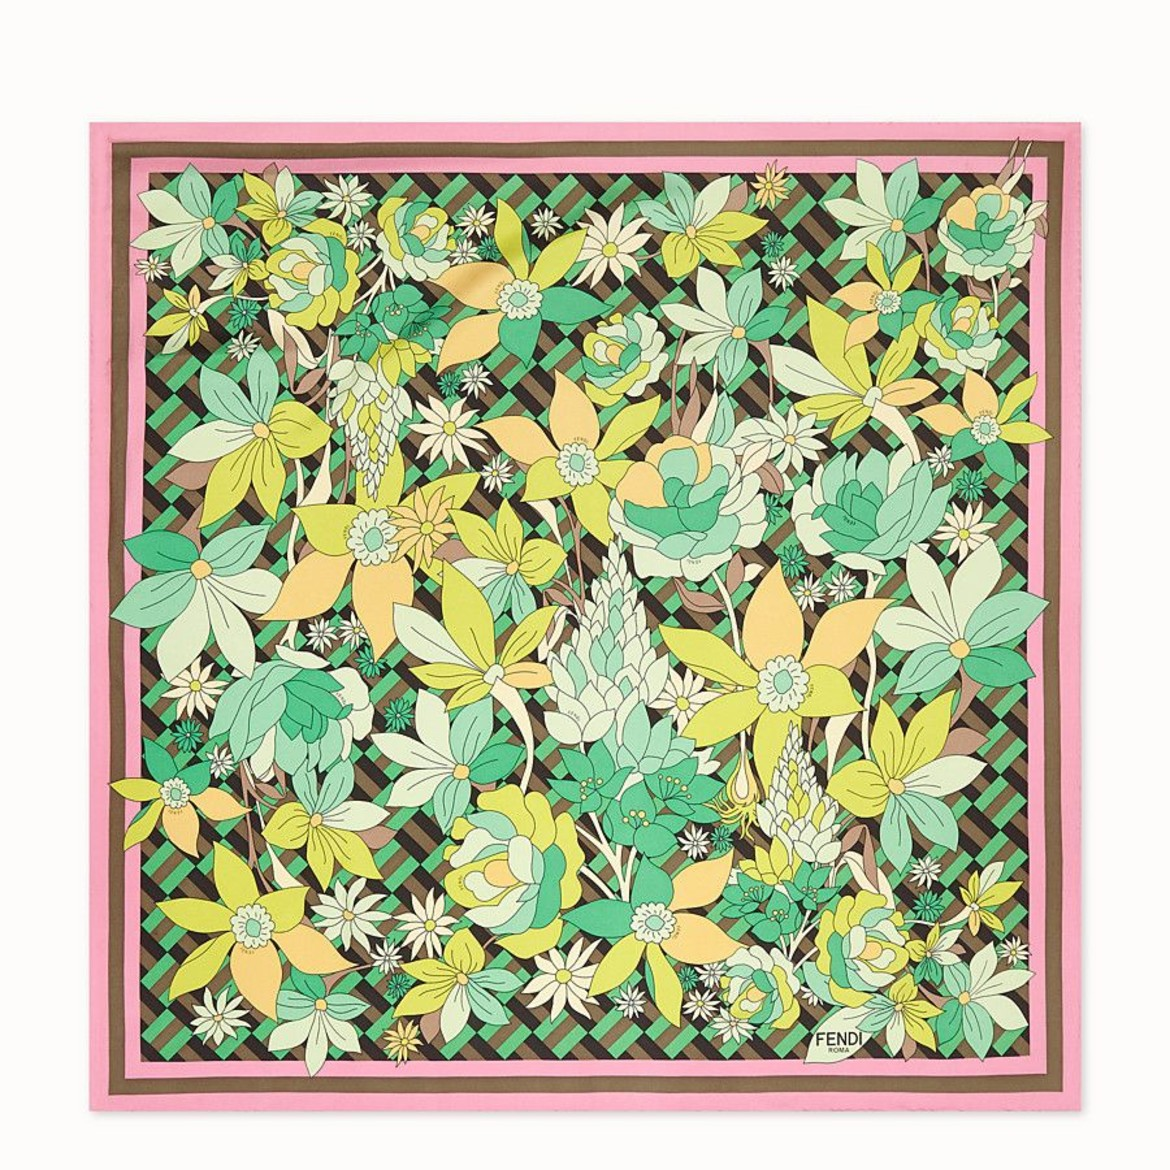 FENDI flowers foulard multicolor silk foulard HK$3,850